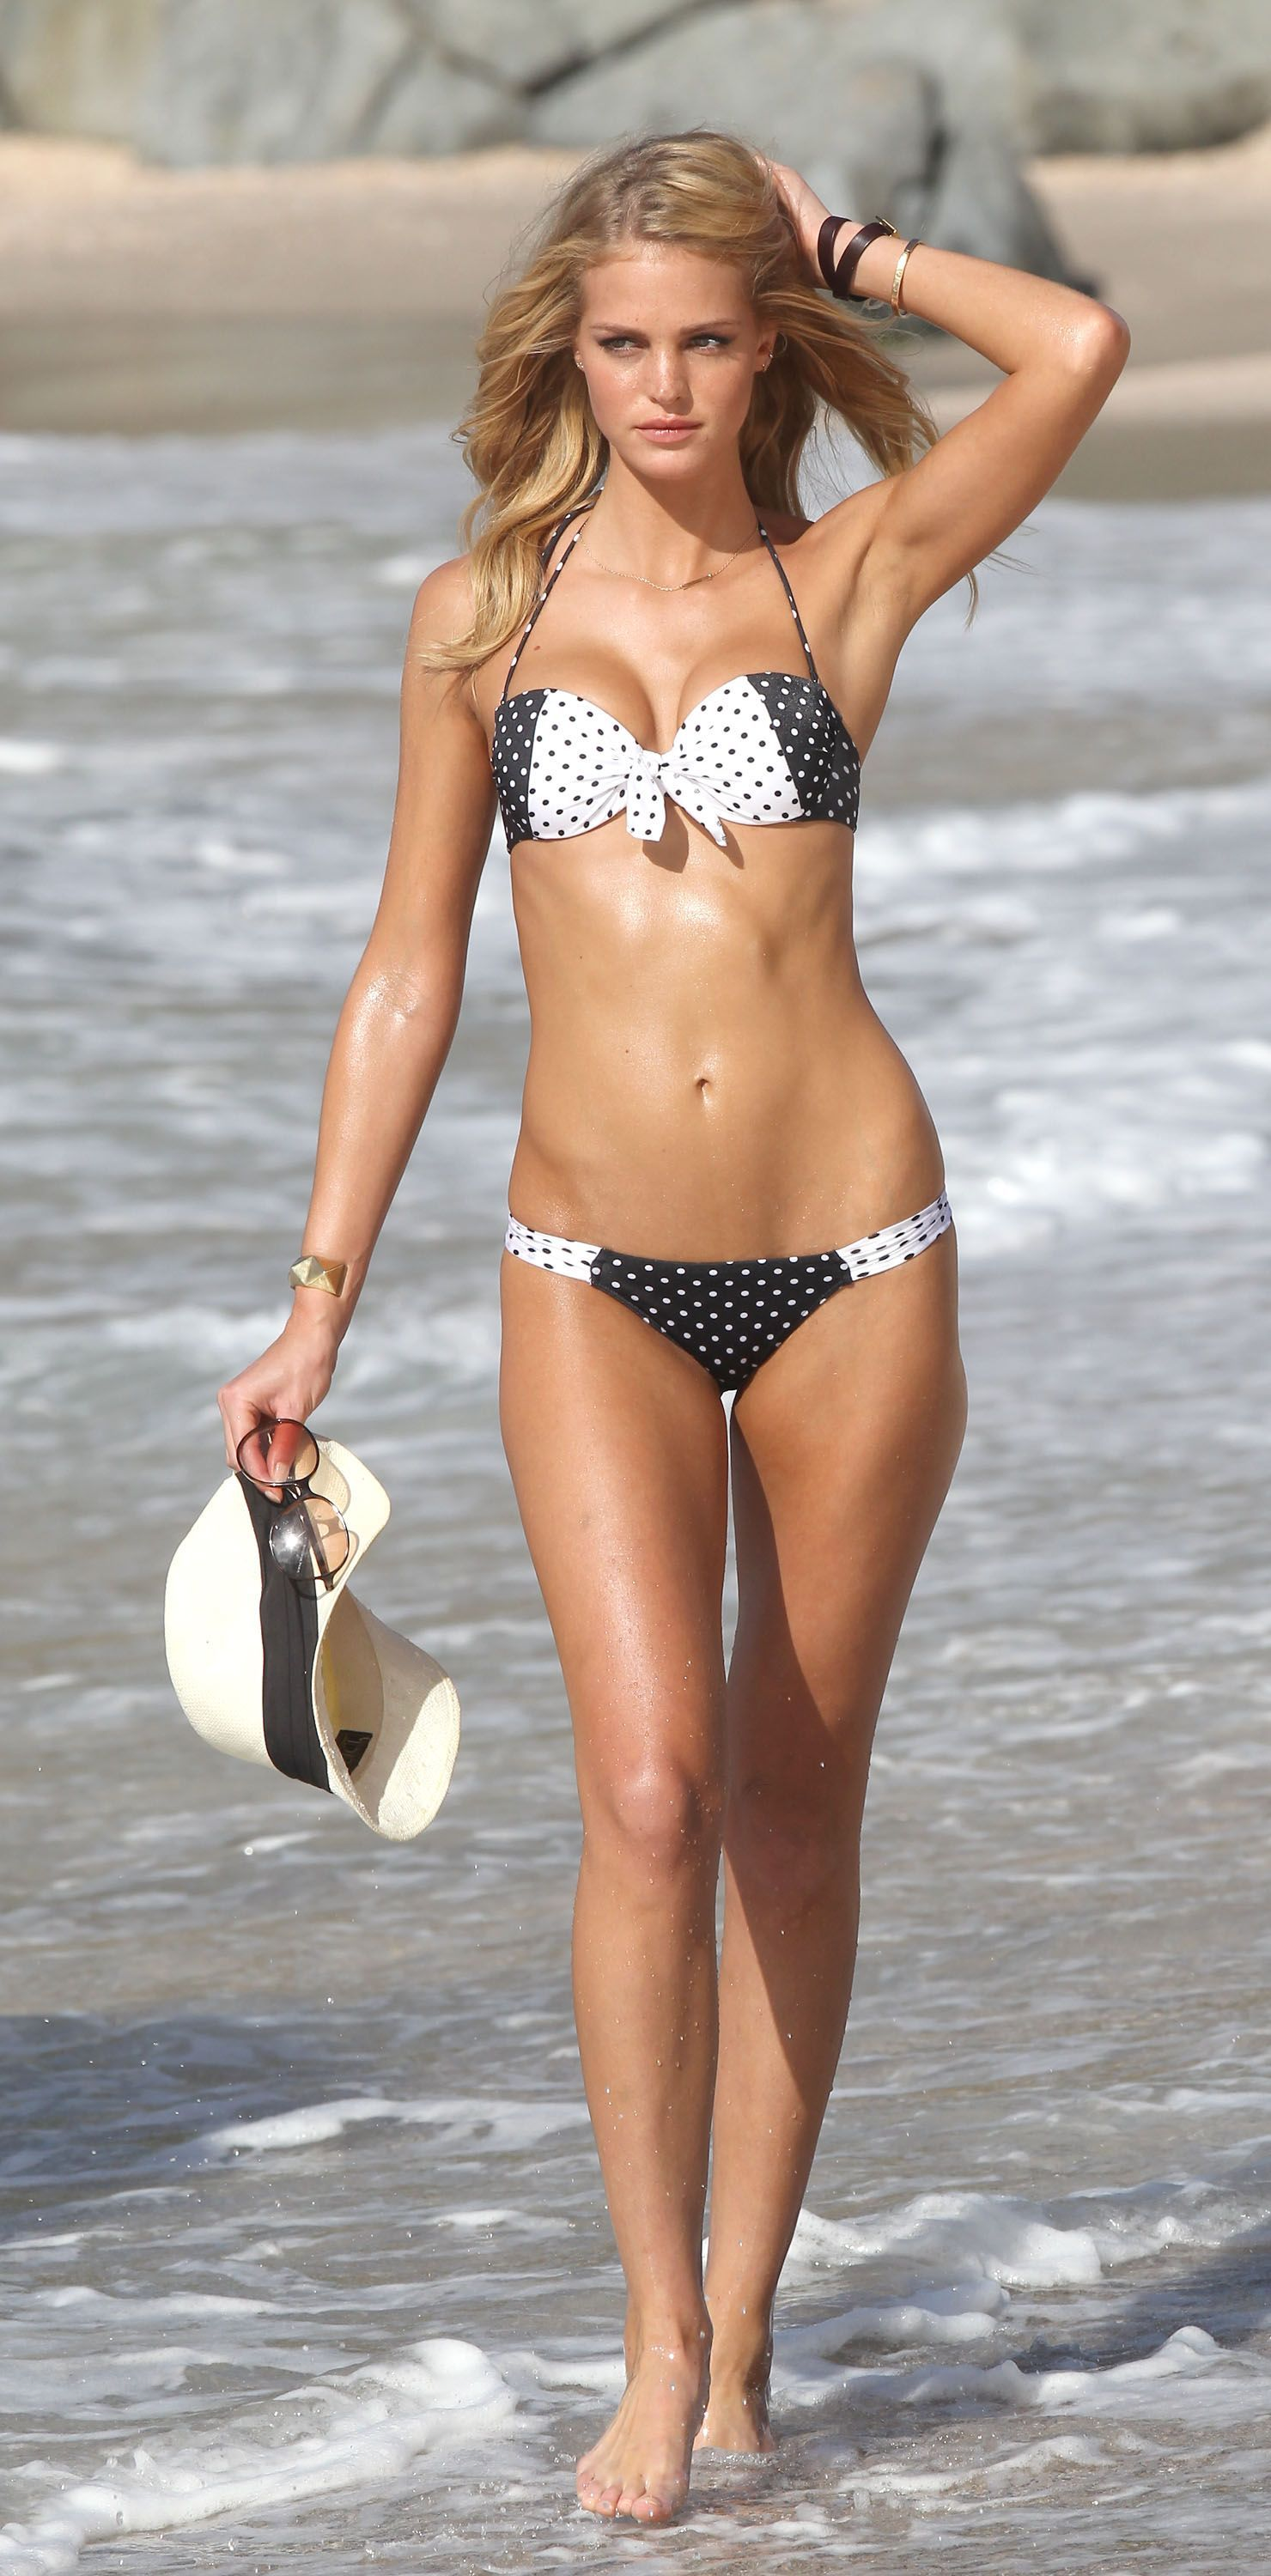 Erin Heatherton Shows Off Her Bikini Body - Fab Fashion Fix Victoria Secret  Bikini 7e1c8b95ed